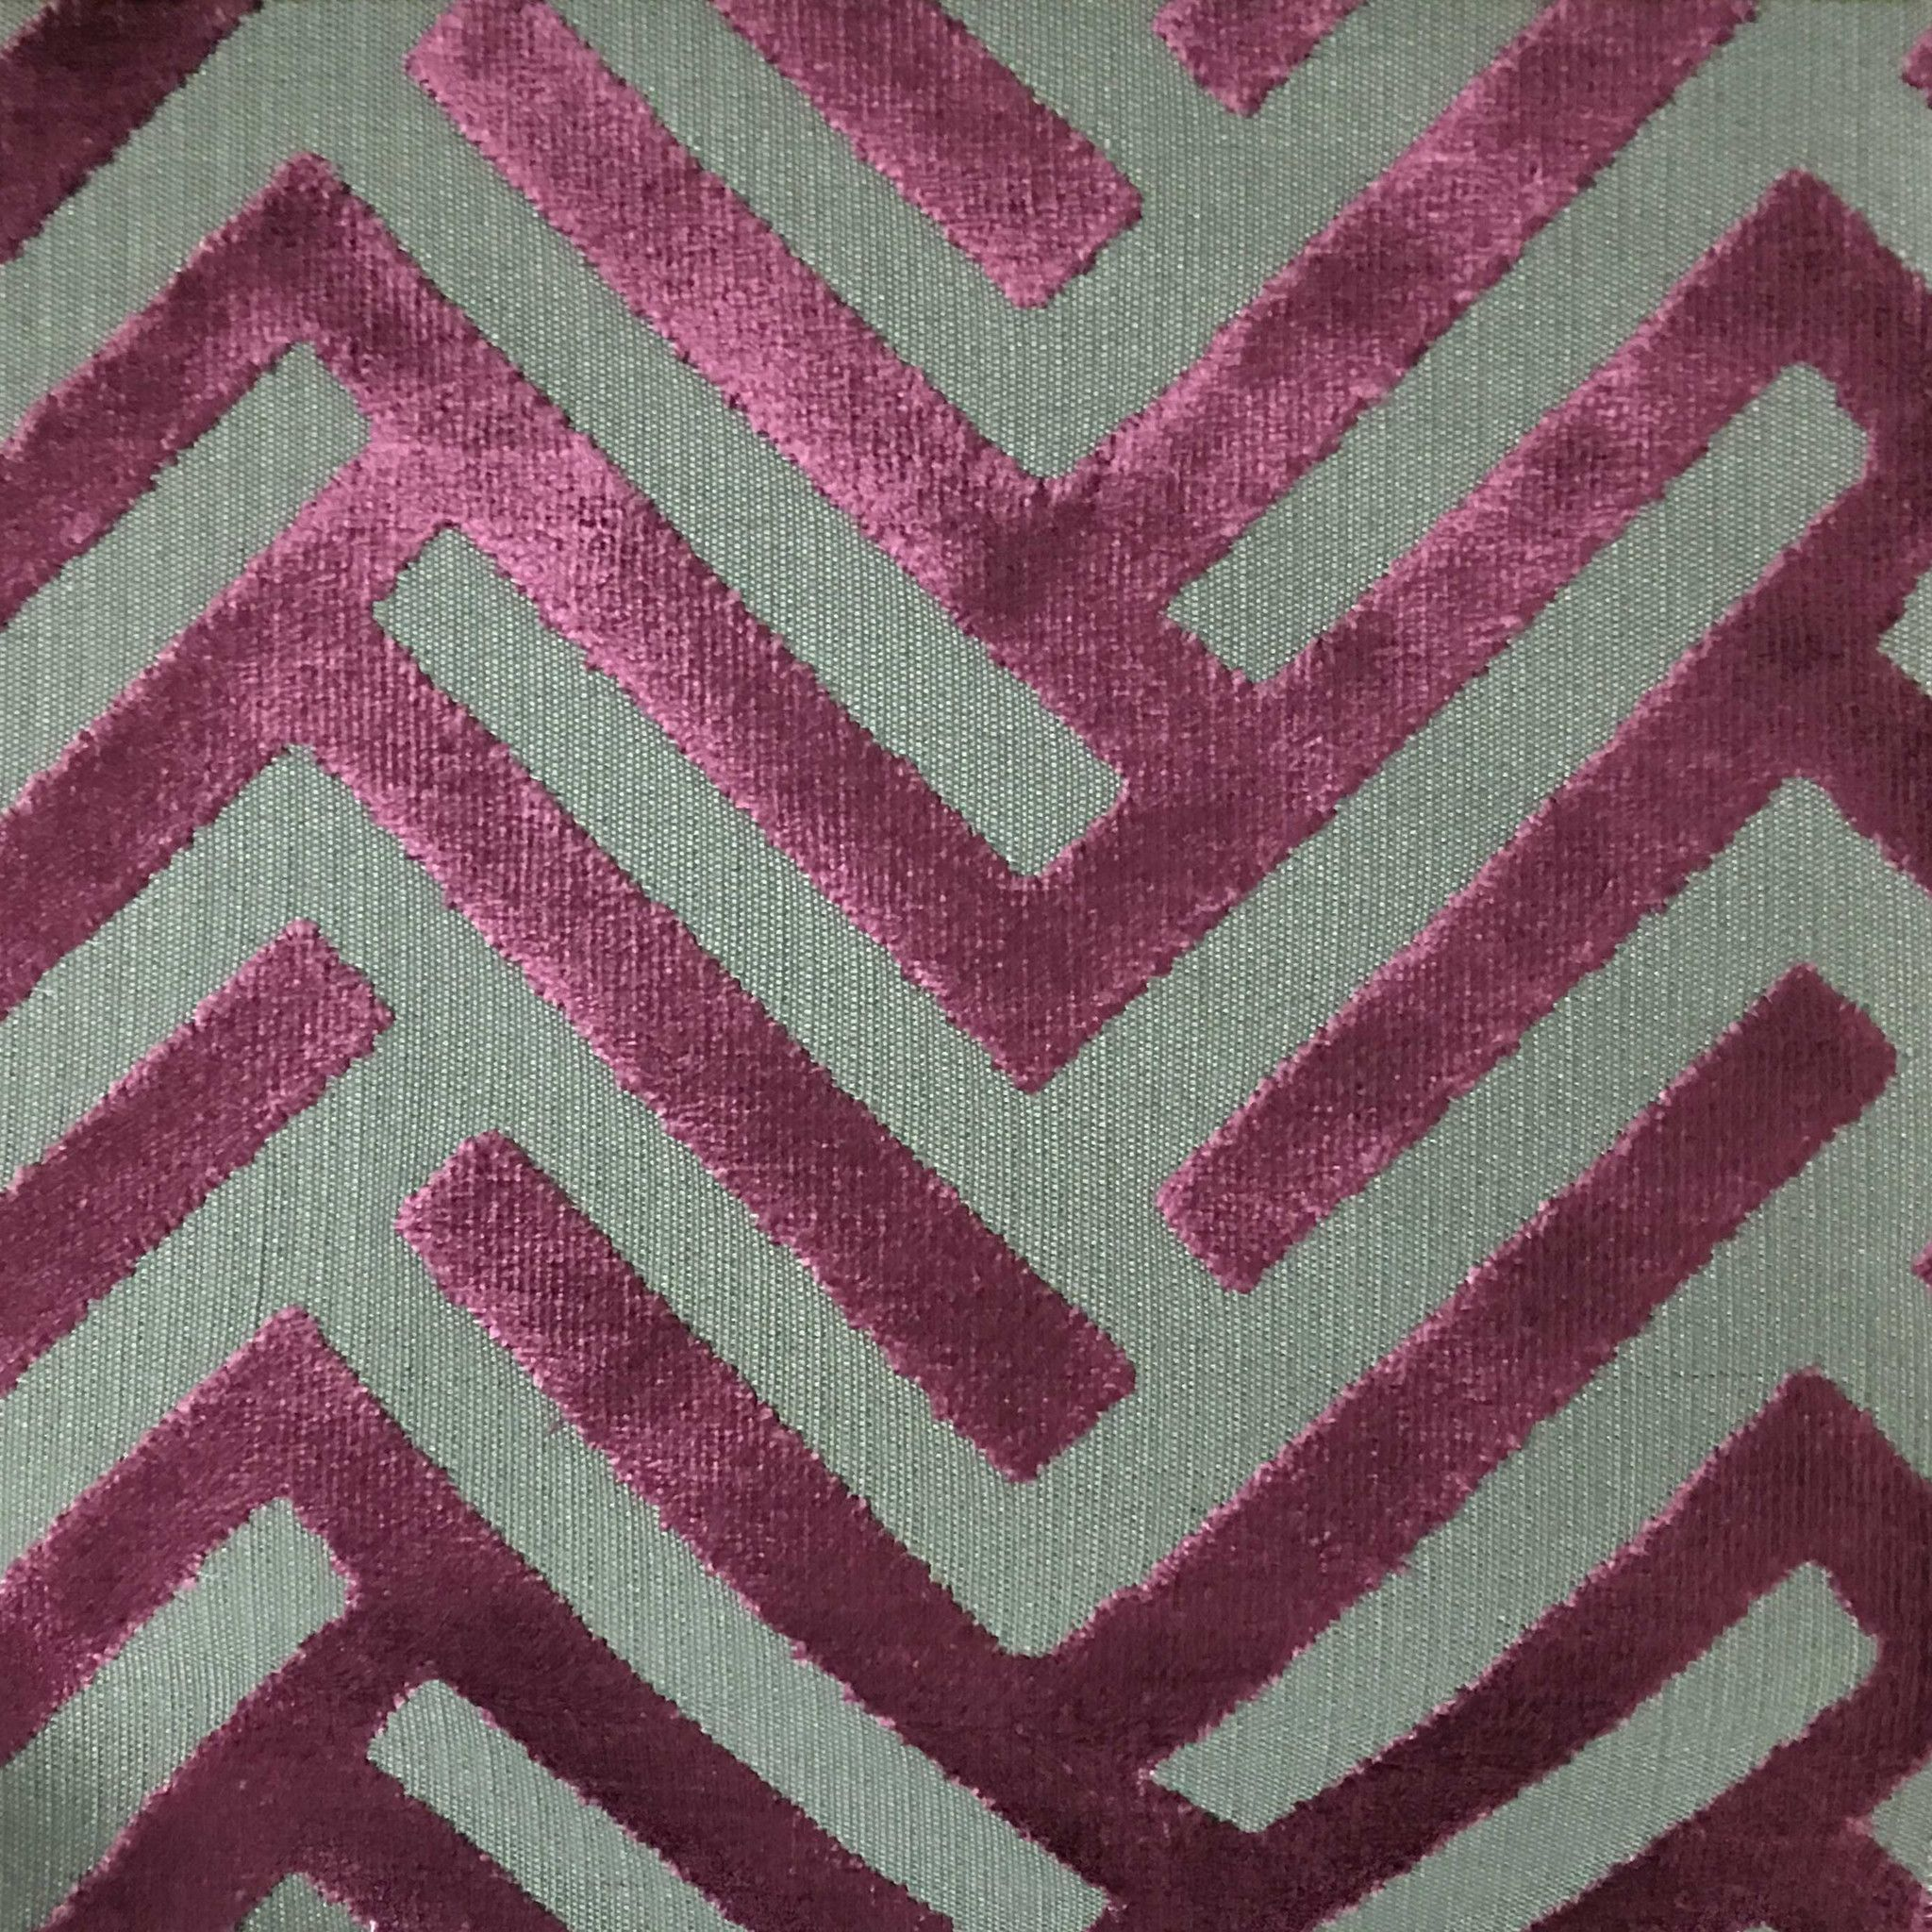 Home Decor Fabrics By The Yard upholstery fabric by the yard geometric embrace corn yellow ash grey premier prints home decor upholstery Upholstery Fabric Ministry Amethyst Cut Velvet Home Decor Upholstery Drapery Fabric By The Yard Available In 10 Colors